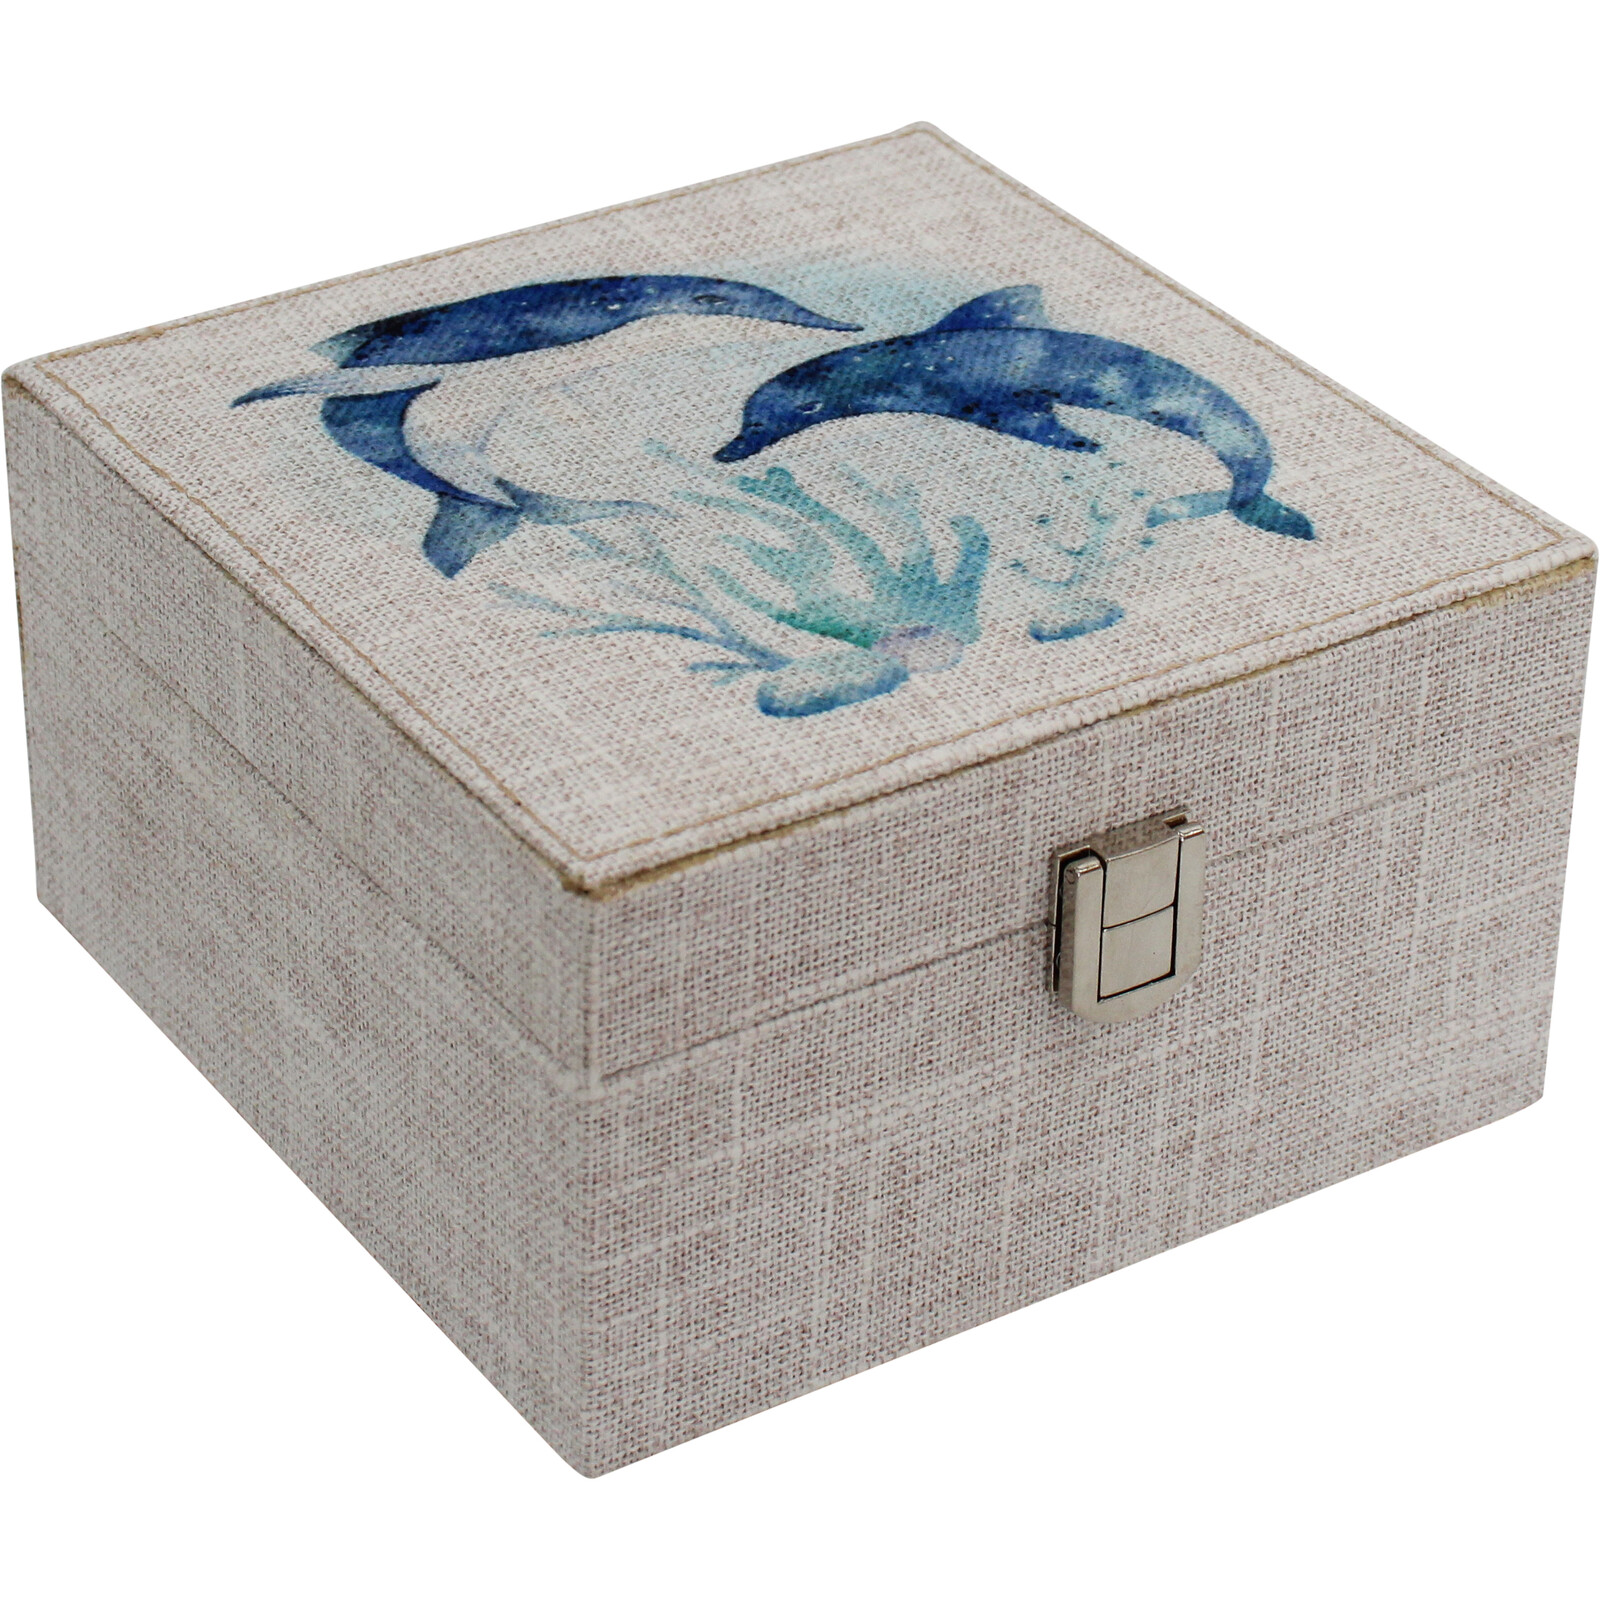 Box Dolphins